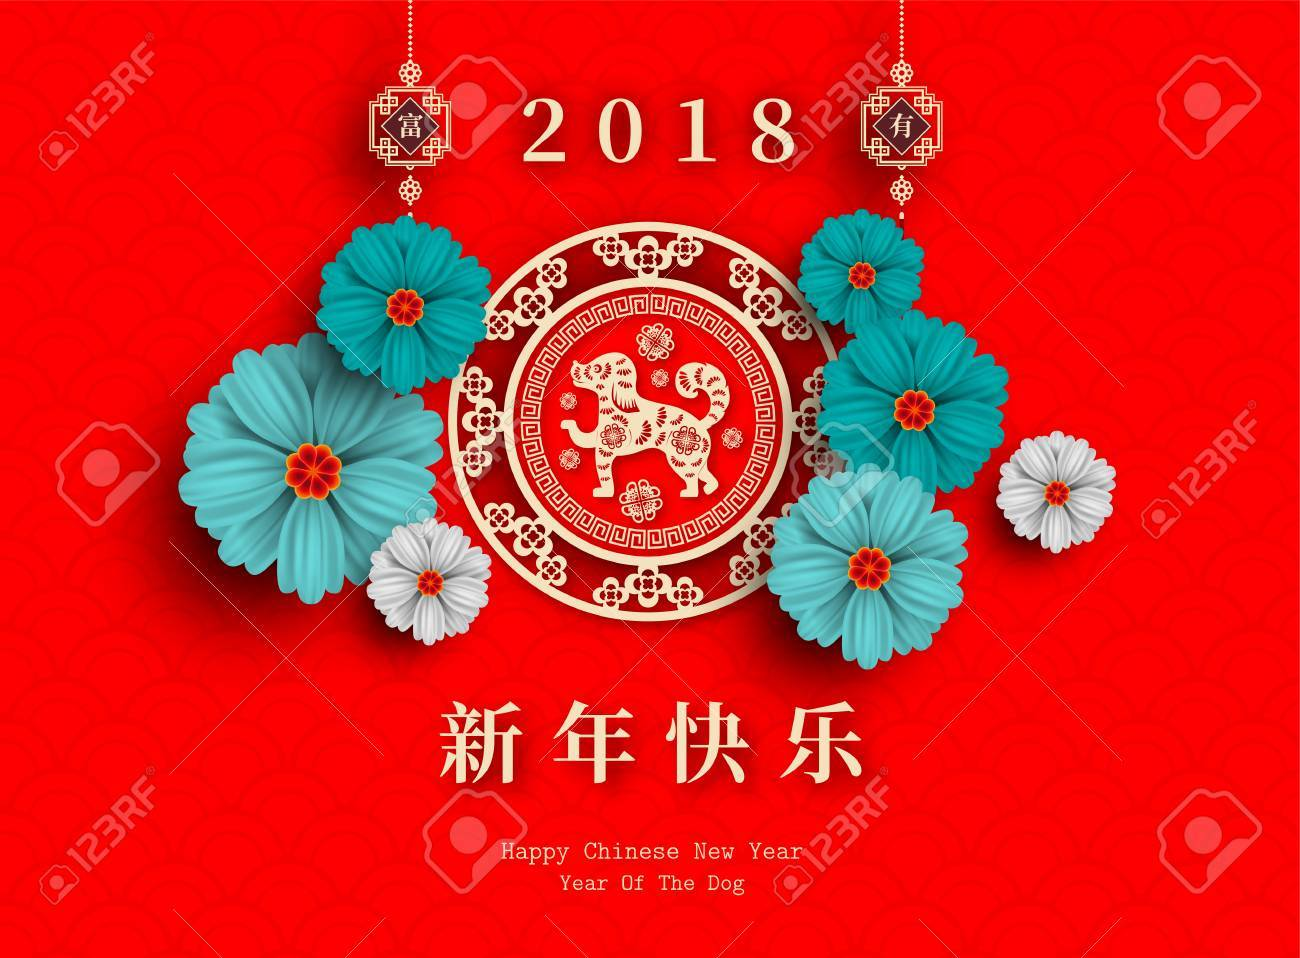 2018 chinese new year greeting card design royalty free cliparts 2018 chinese new year greeting card design stock vector 88901043 m4hsunfo